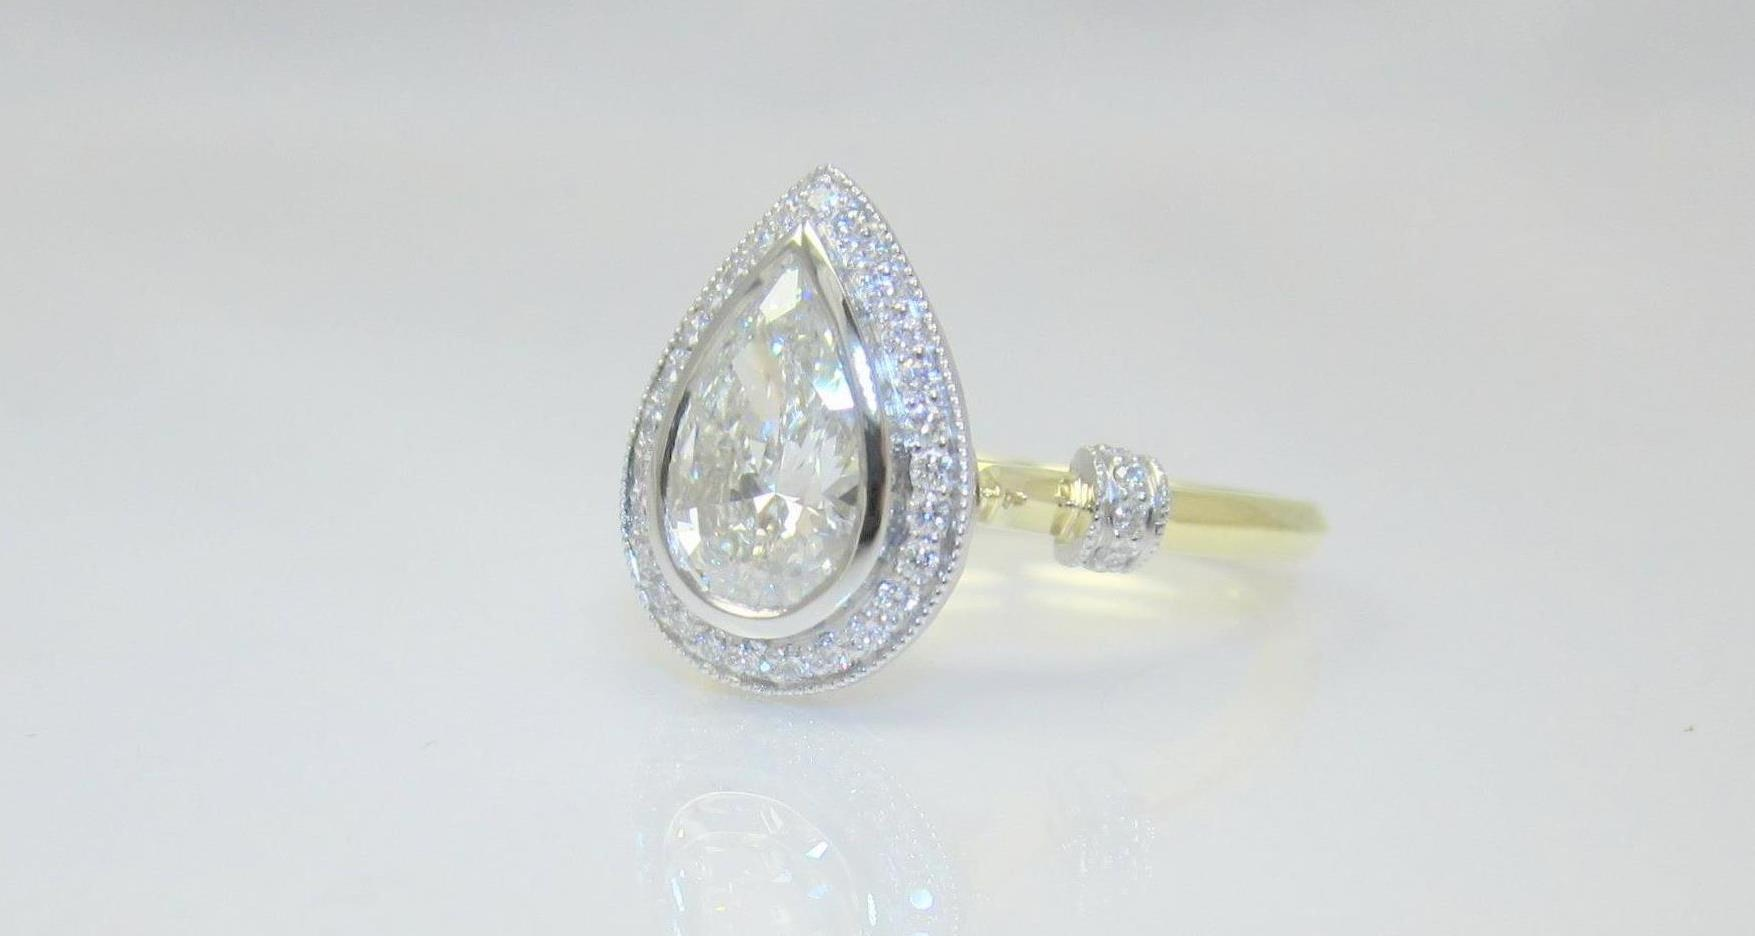 keezing shaped ring jewelry engagement rings handmade linda diamond pear gallery kreations